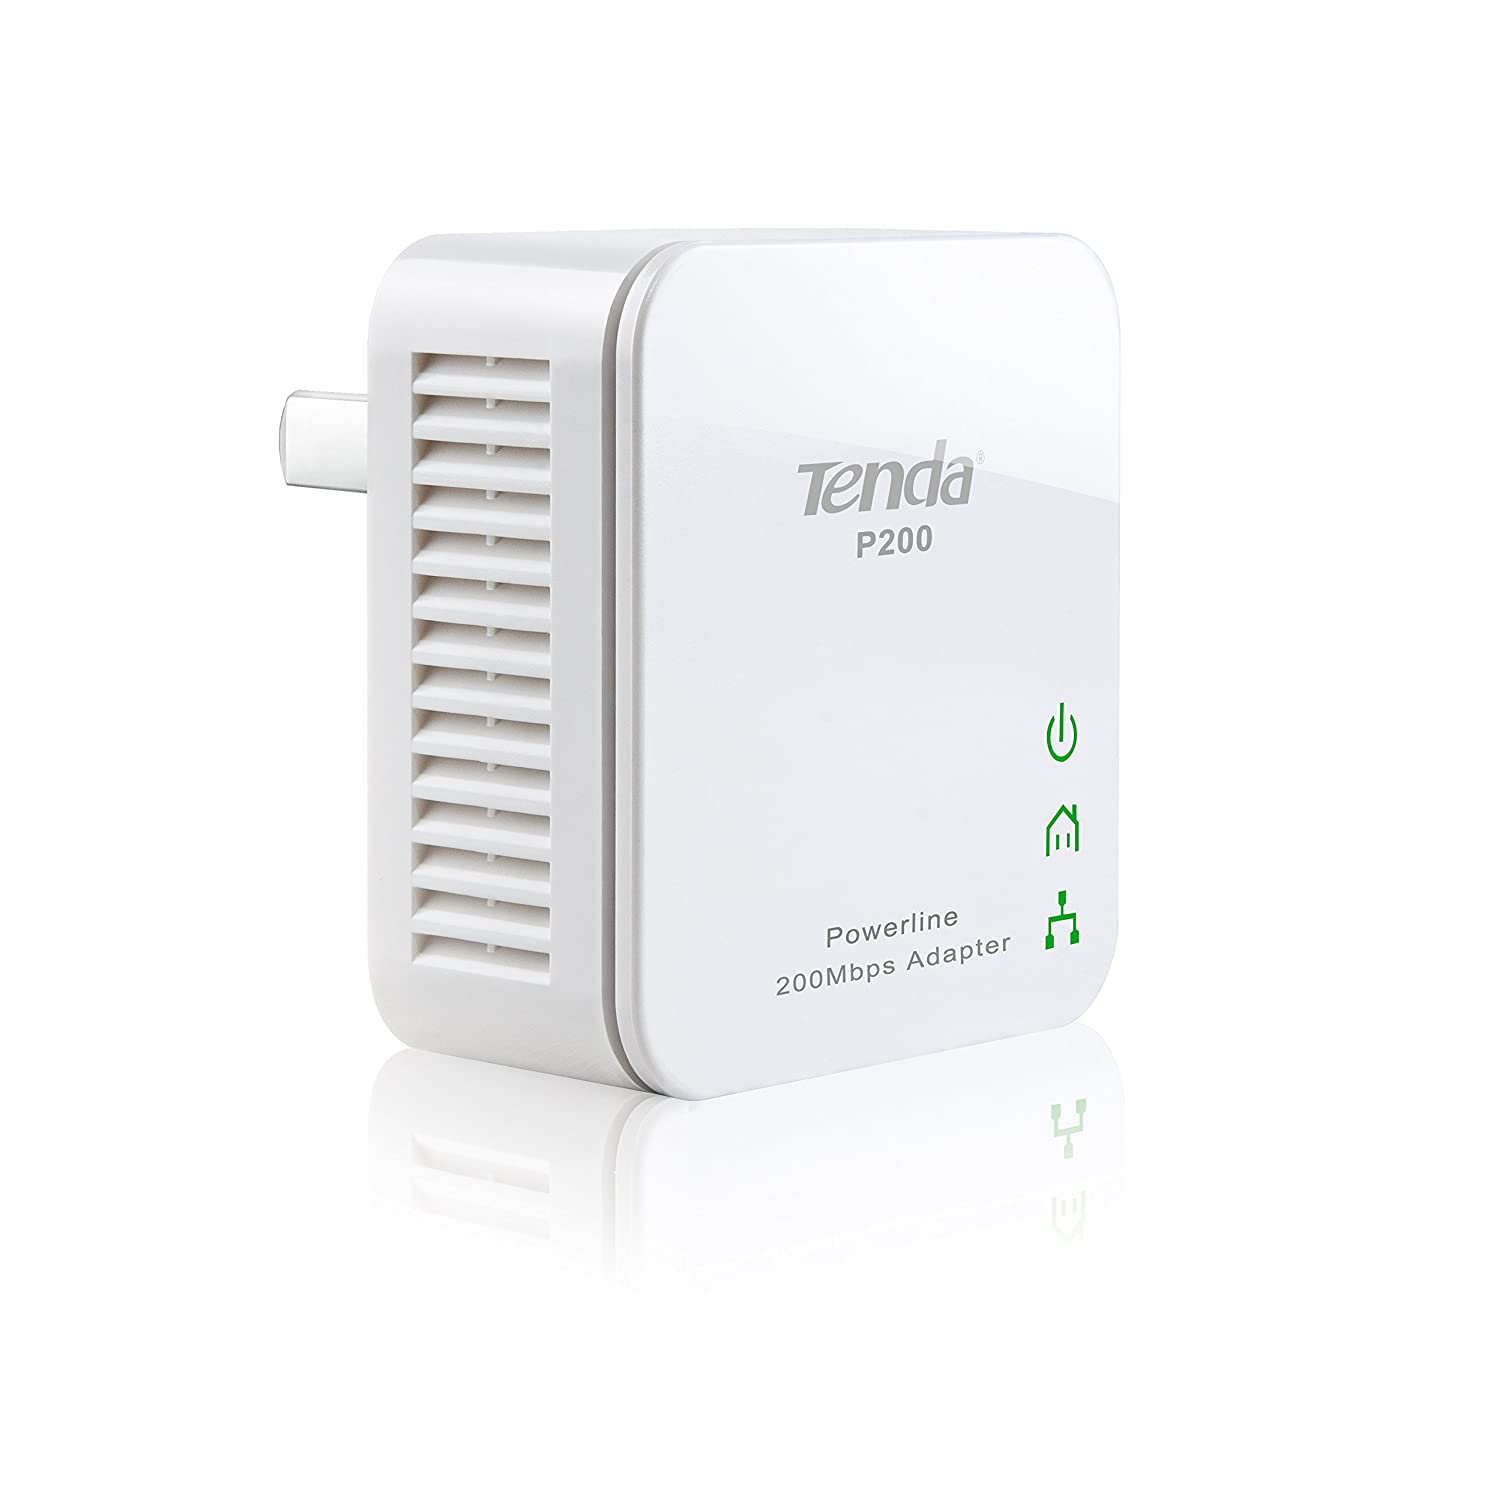 Tenda P200 Powerline Adapter Buy Wiring Diagram Online At Low Price In India